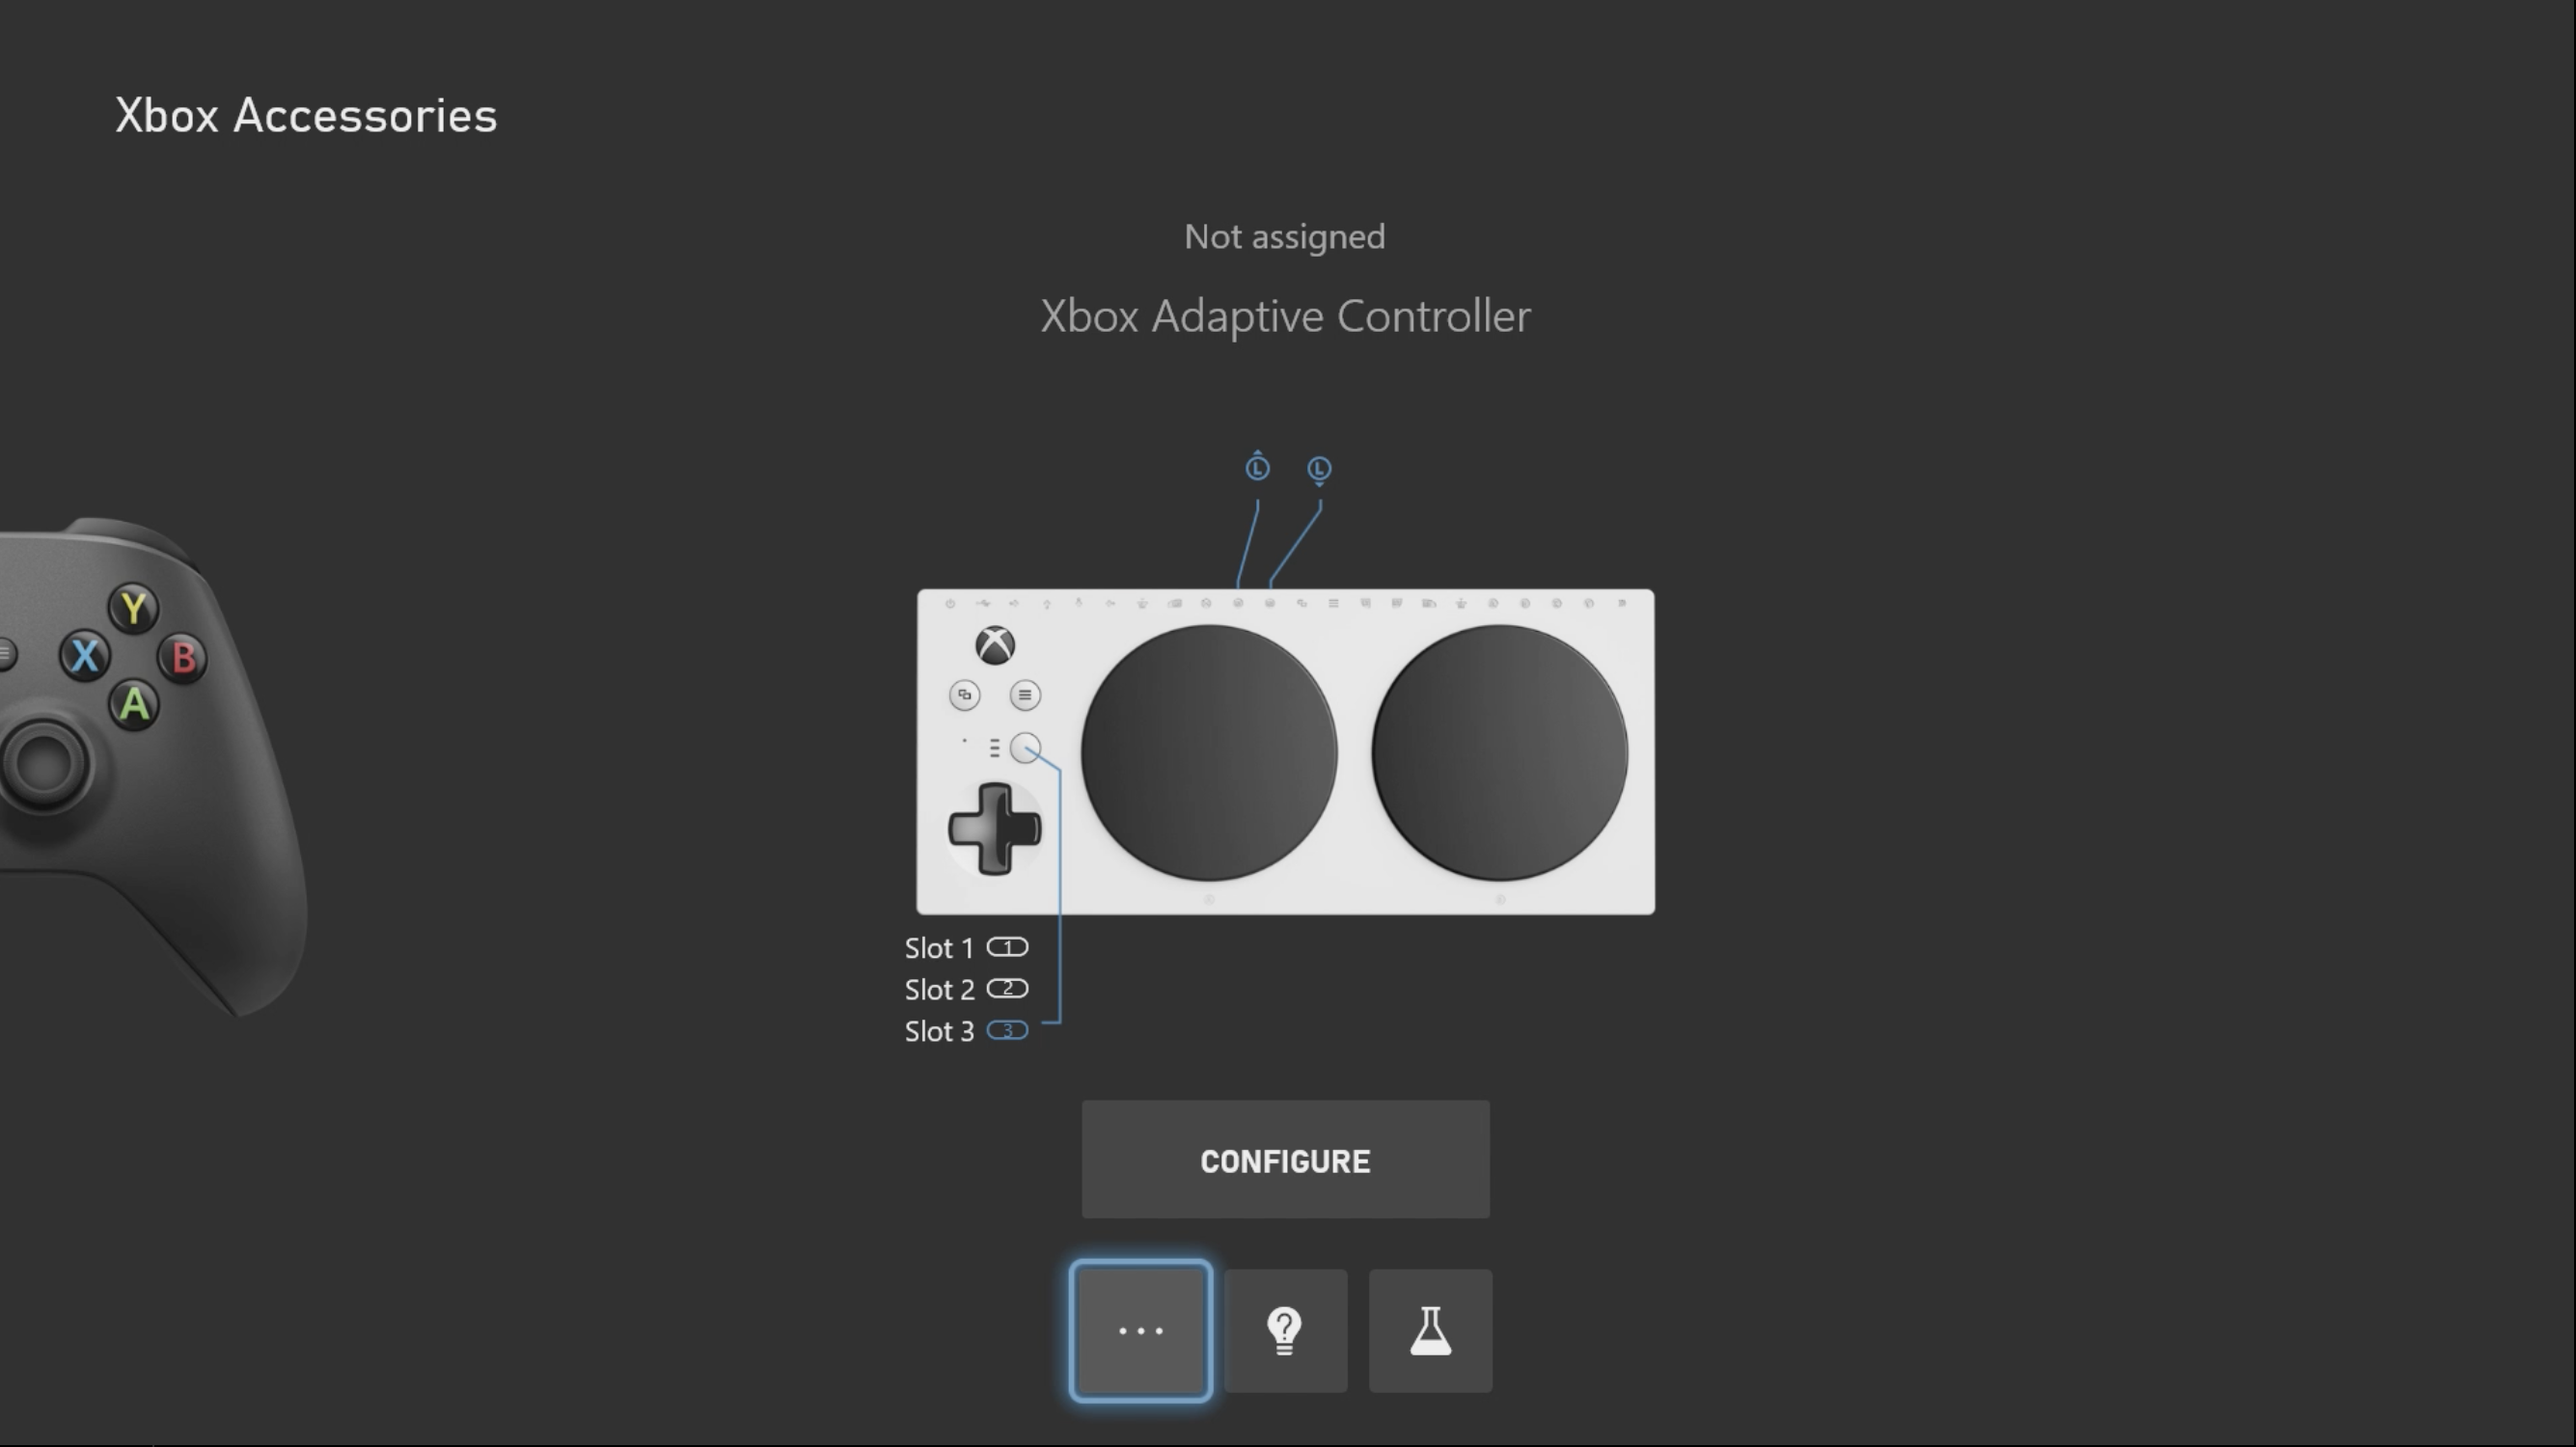 Screenshot showing an Xbox Adaptive Controller image within the Xbox Accessories app. A standard controller image is shown appearing at the side of the screen. An icon at the bottom of the screen with three dots is highlighted.